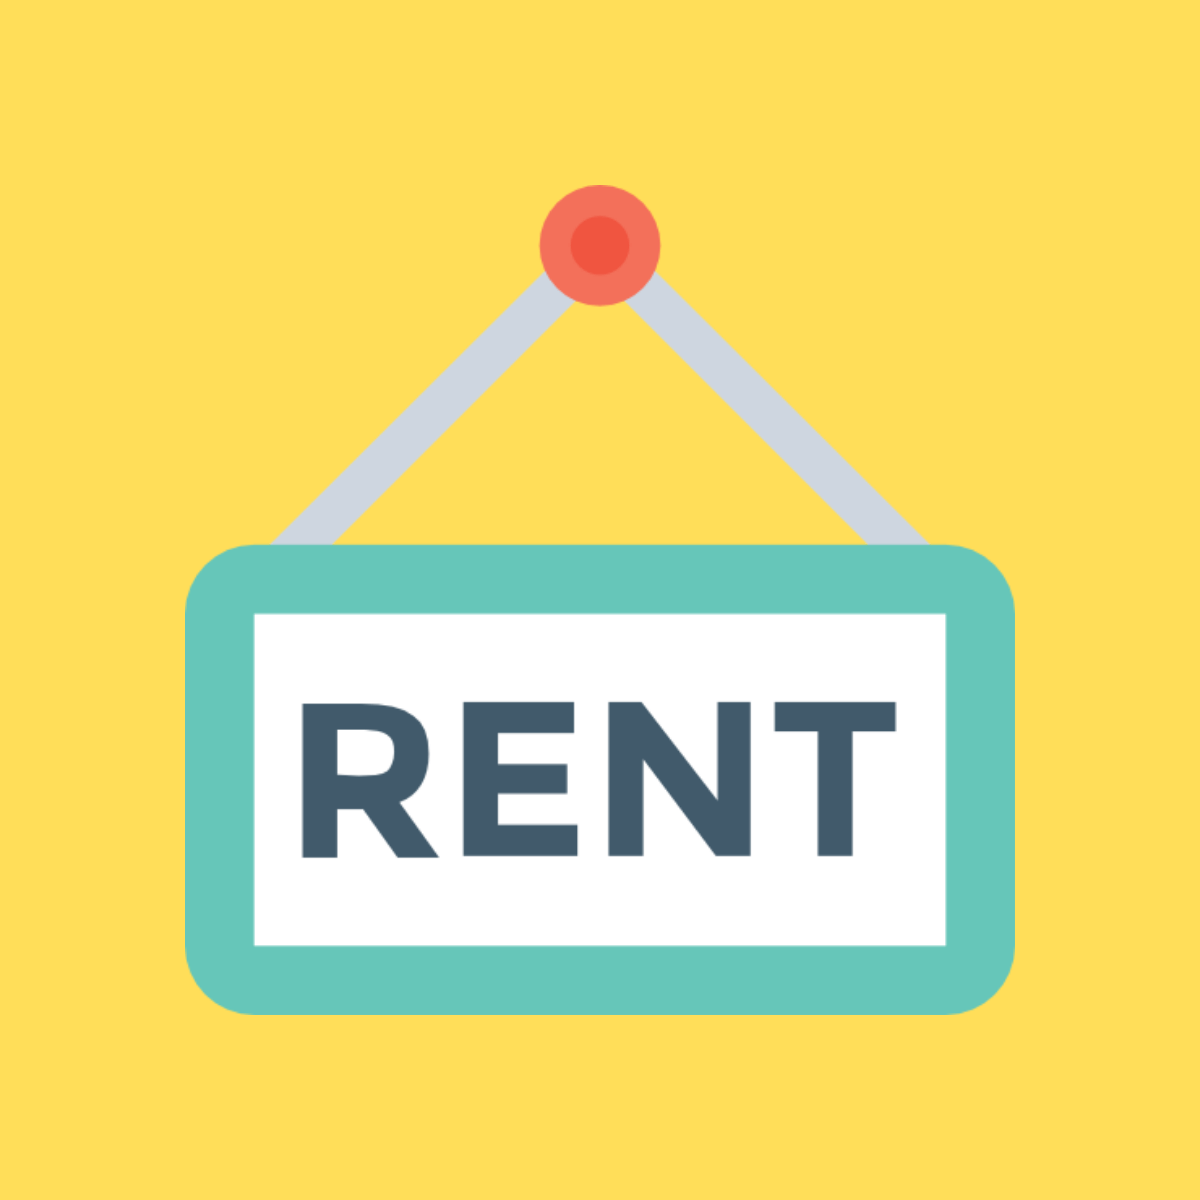 75% Rent Relief Through The Canada Emergency Commercial Rent Assistance (CECRA)